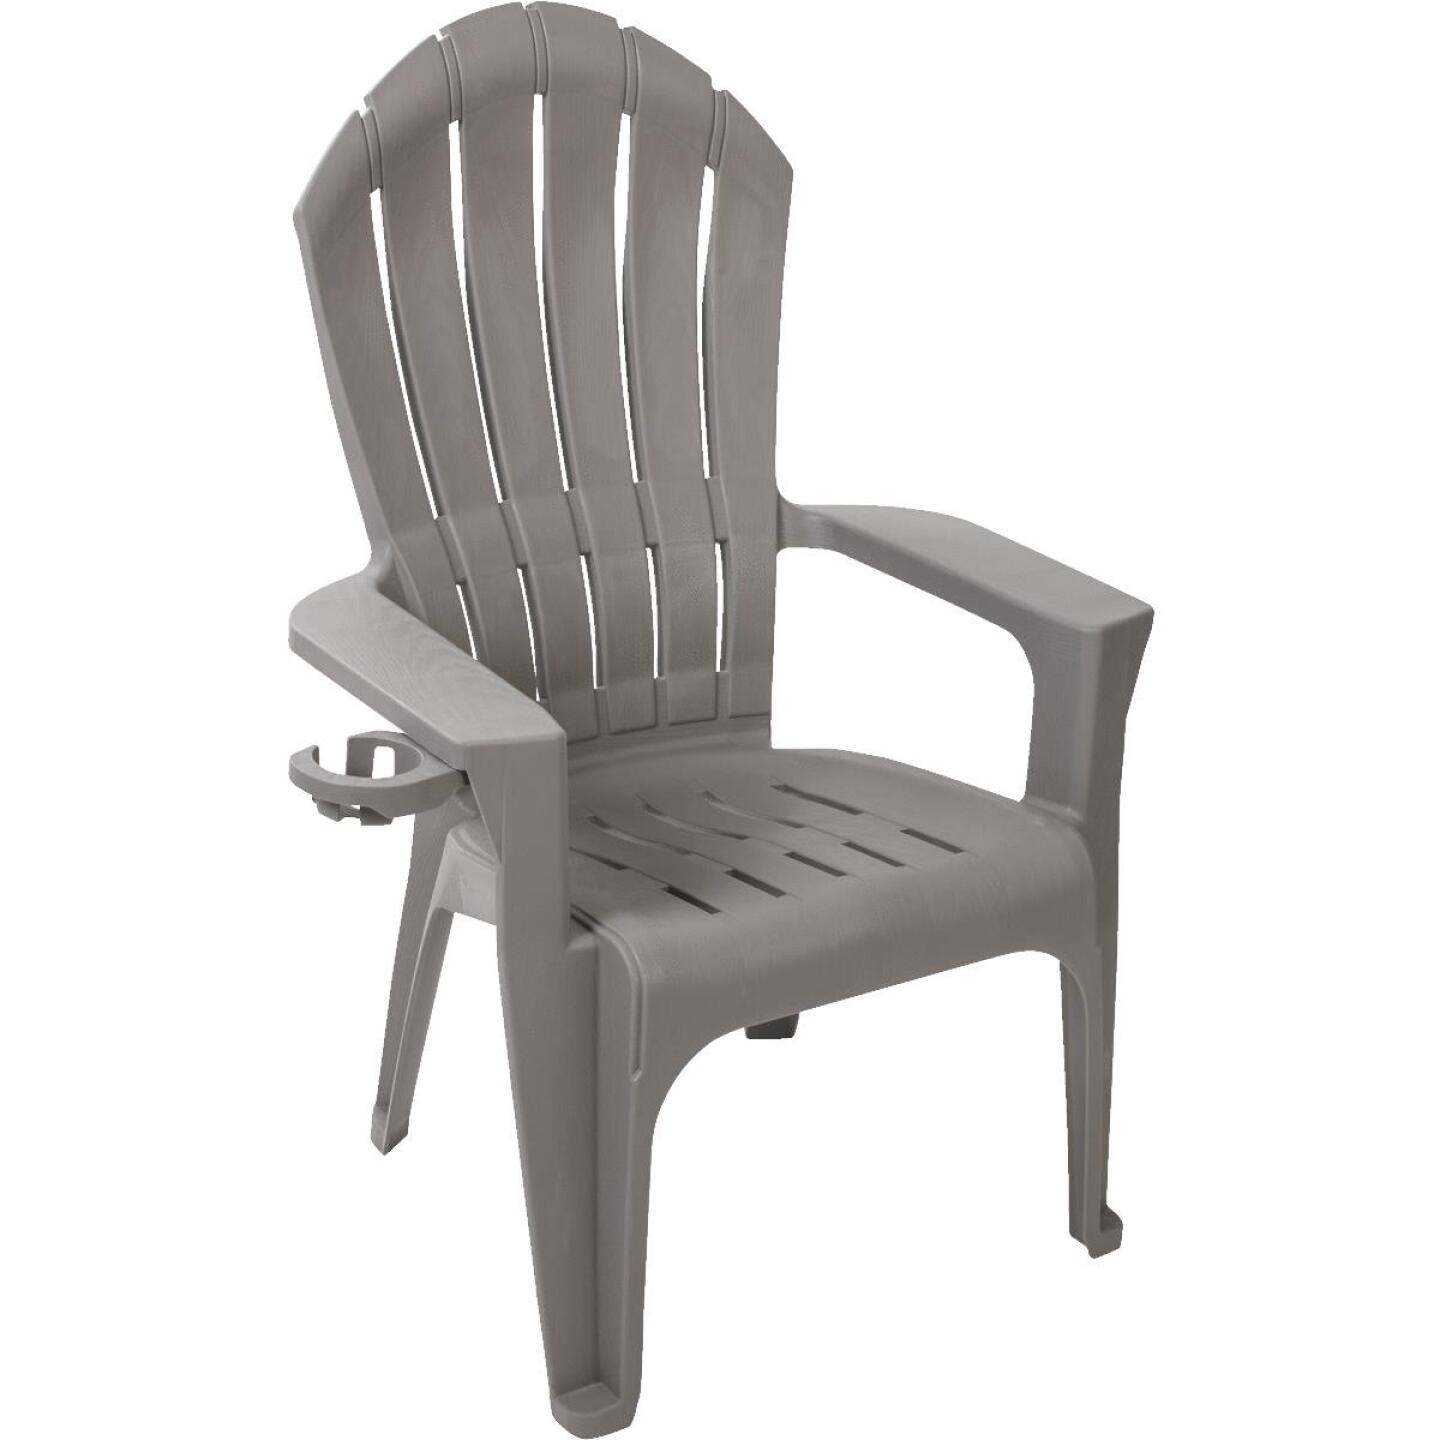 Adams Big Easy Gray Resin Adirondack Chair Image 1